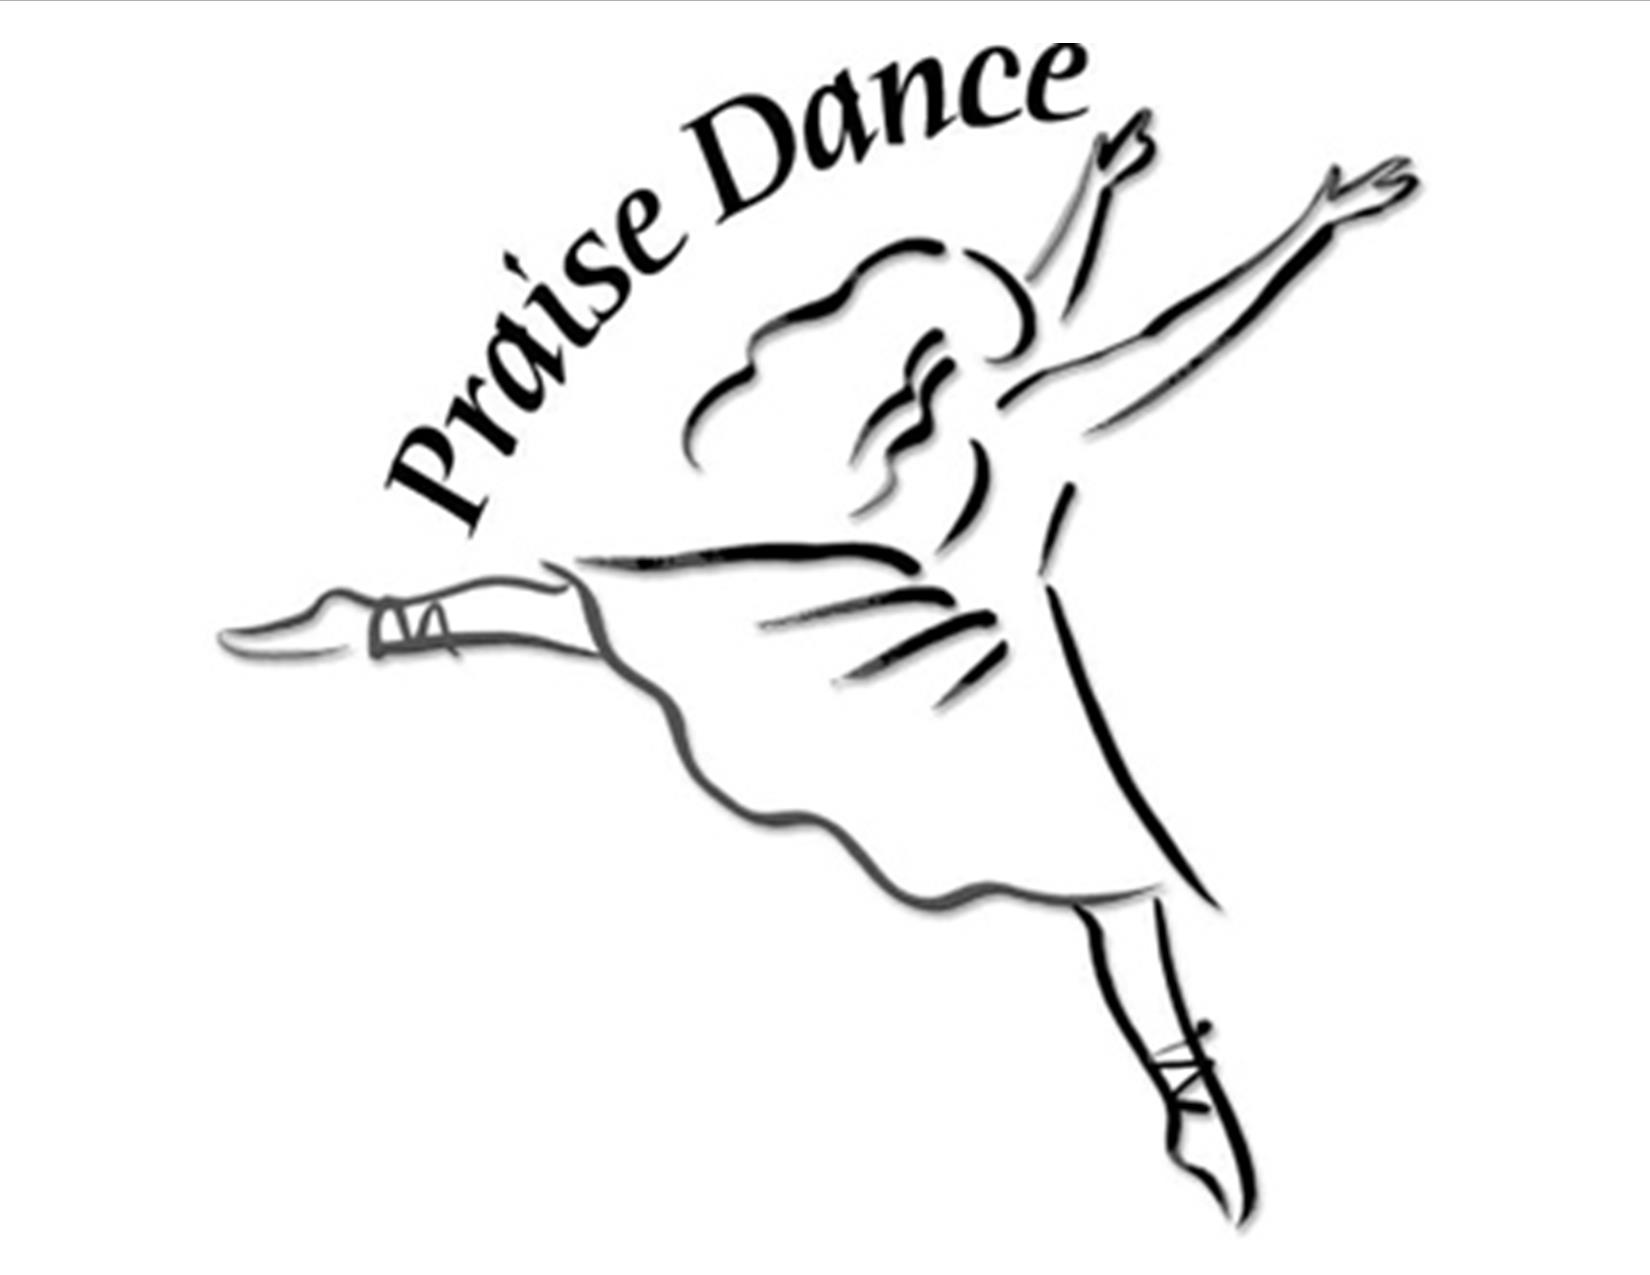 Free Worship Dance Cliparts, Download Free Clip Art, Free